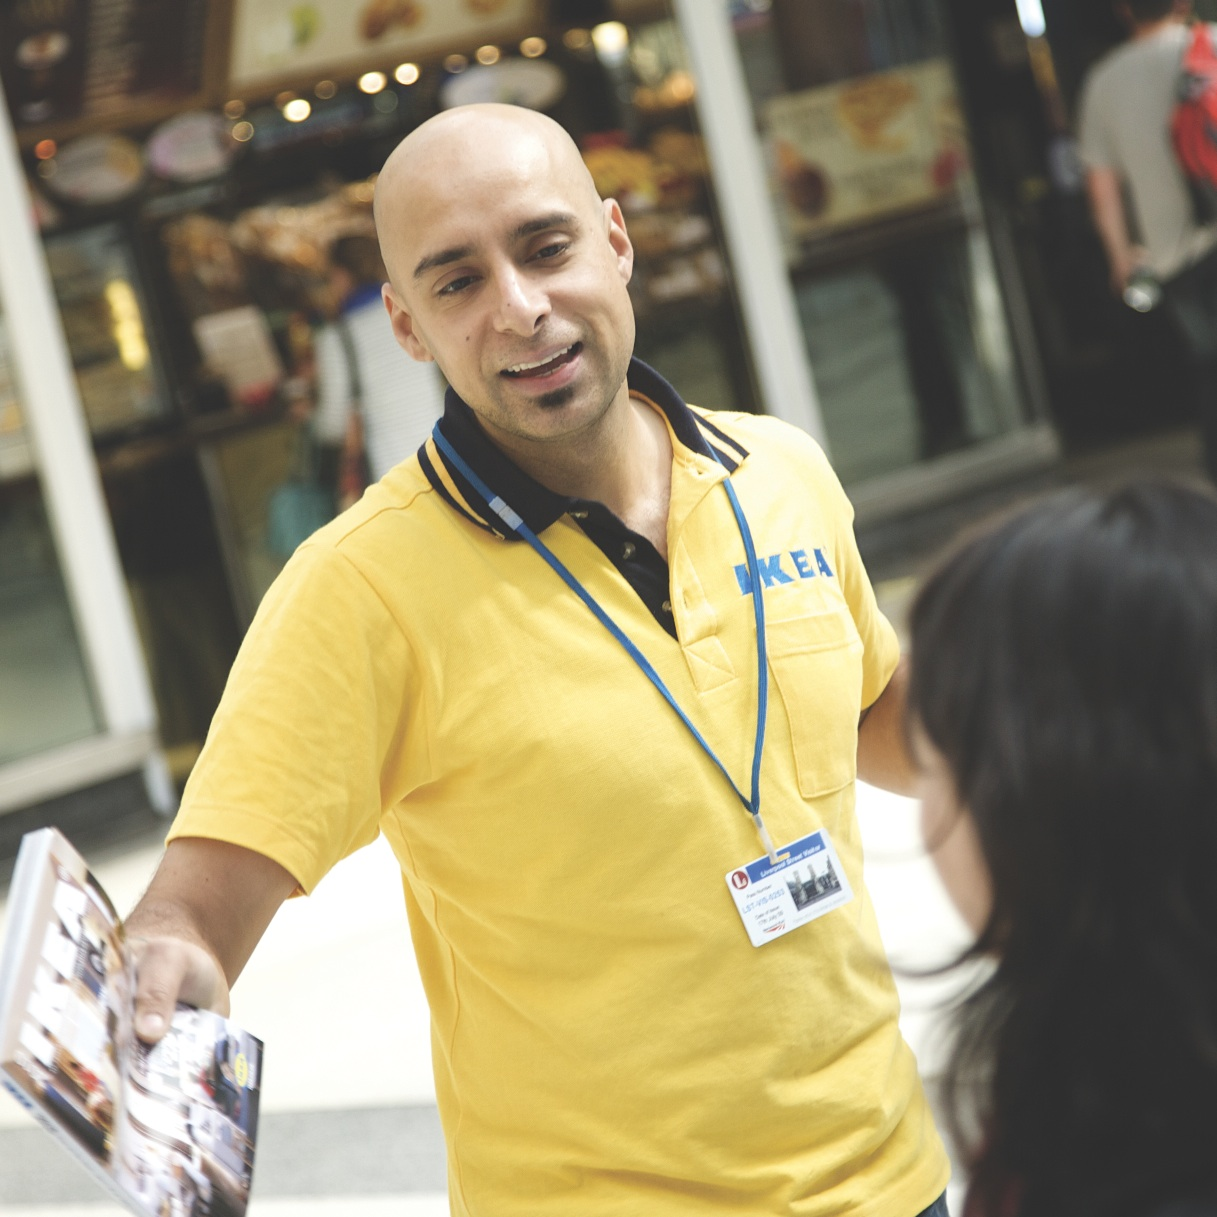 Shopping Centre Promotional Staff